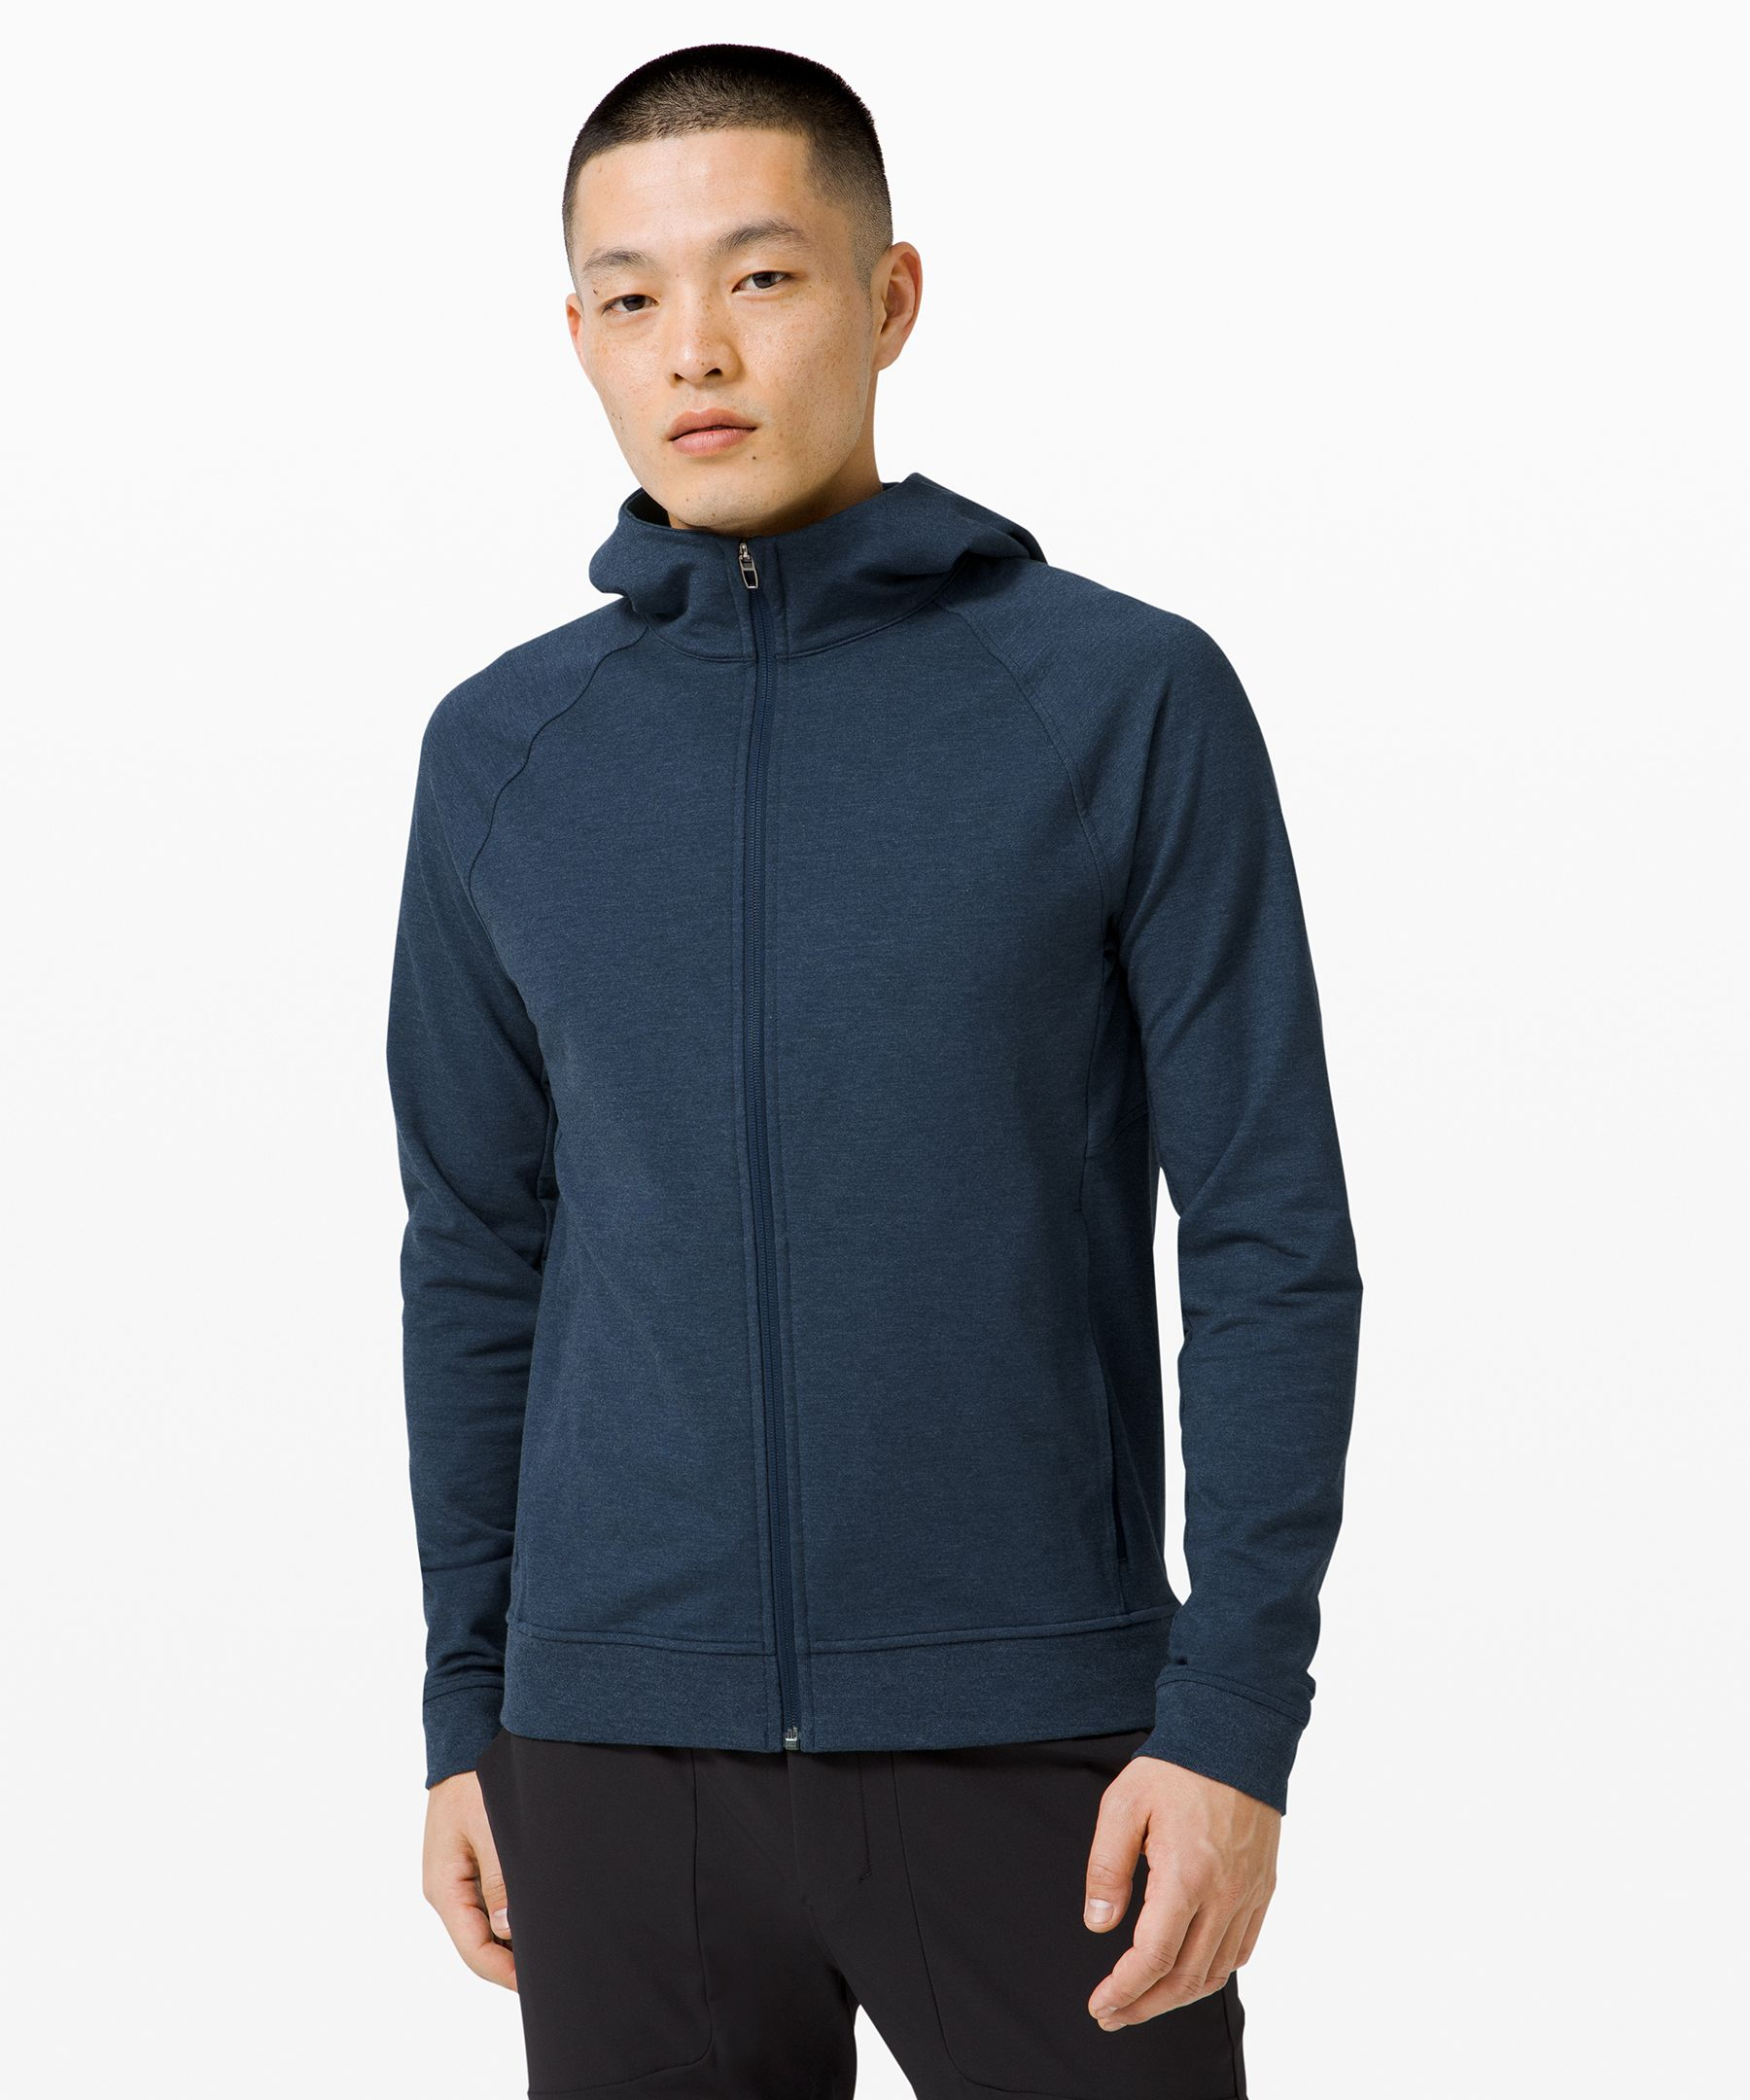 Everyone needs a good hoodie. Soft, naturally breathable fabric makes this one just that much better.